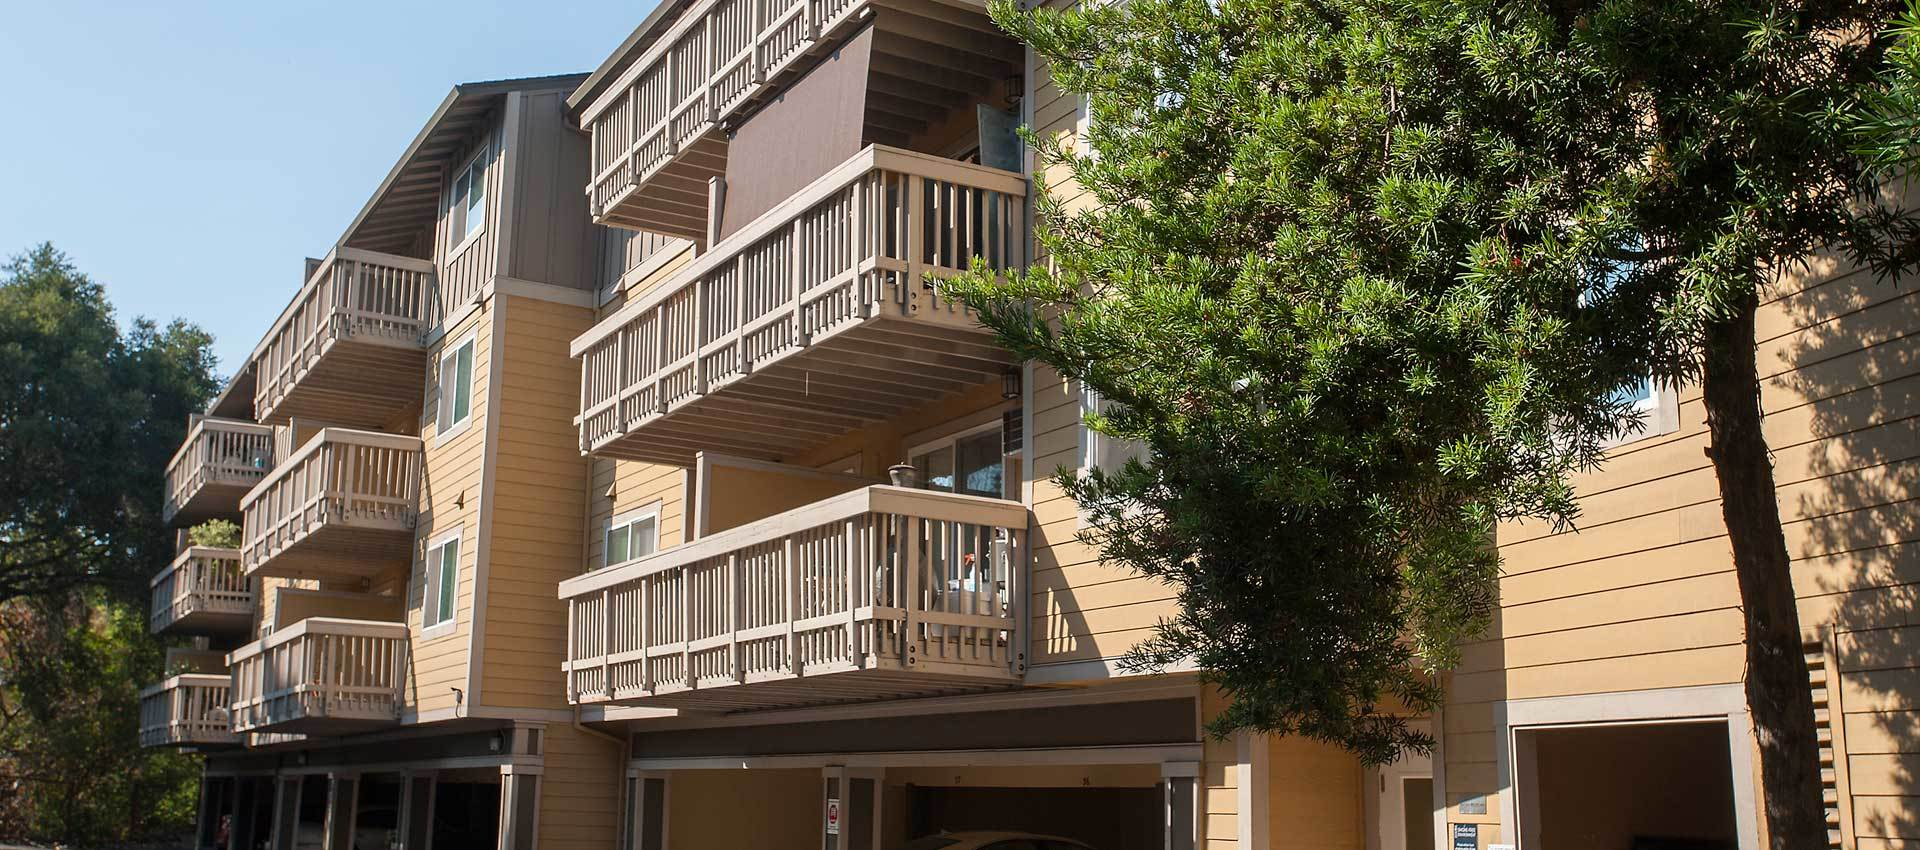 Exterior at Regency Plaza Apartment Homes in Martinez, CA